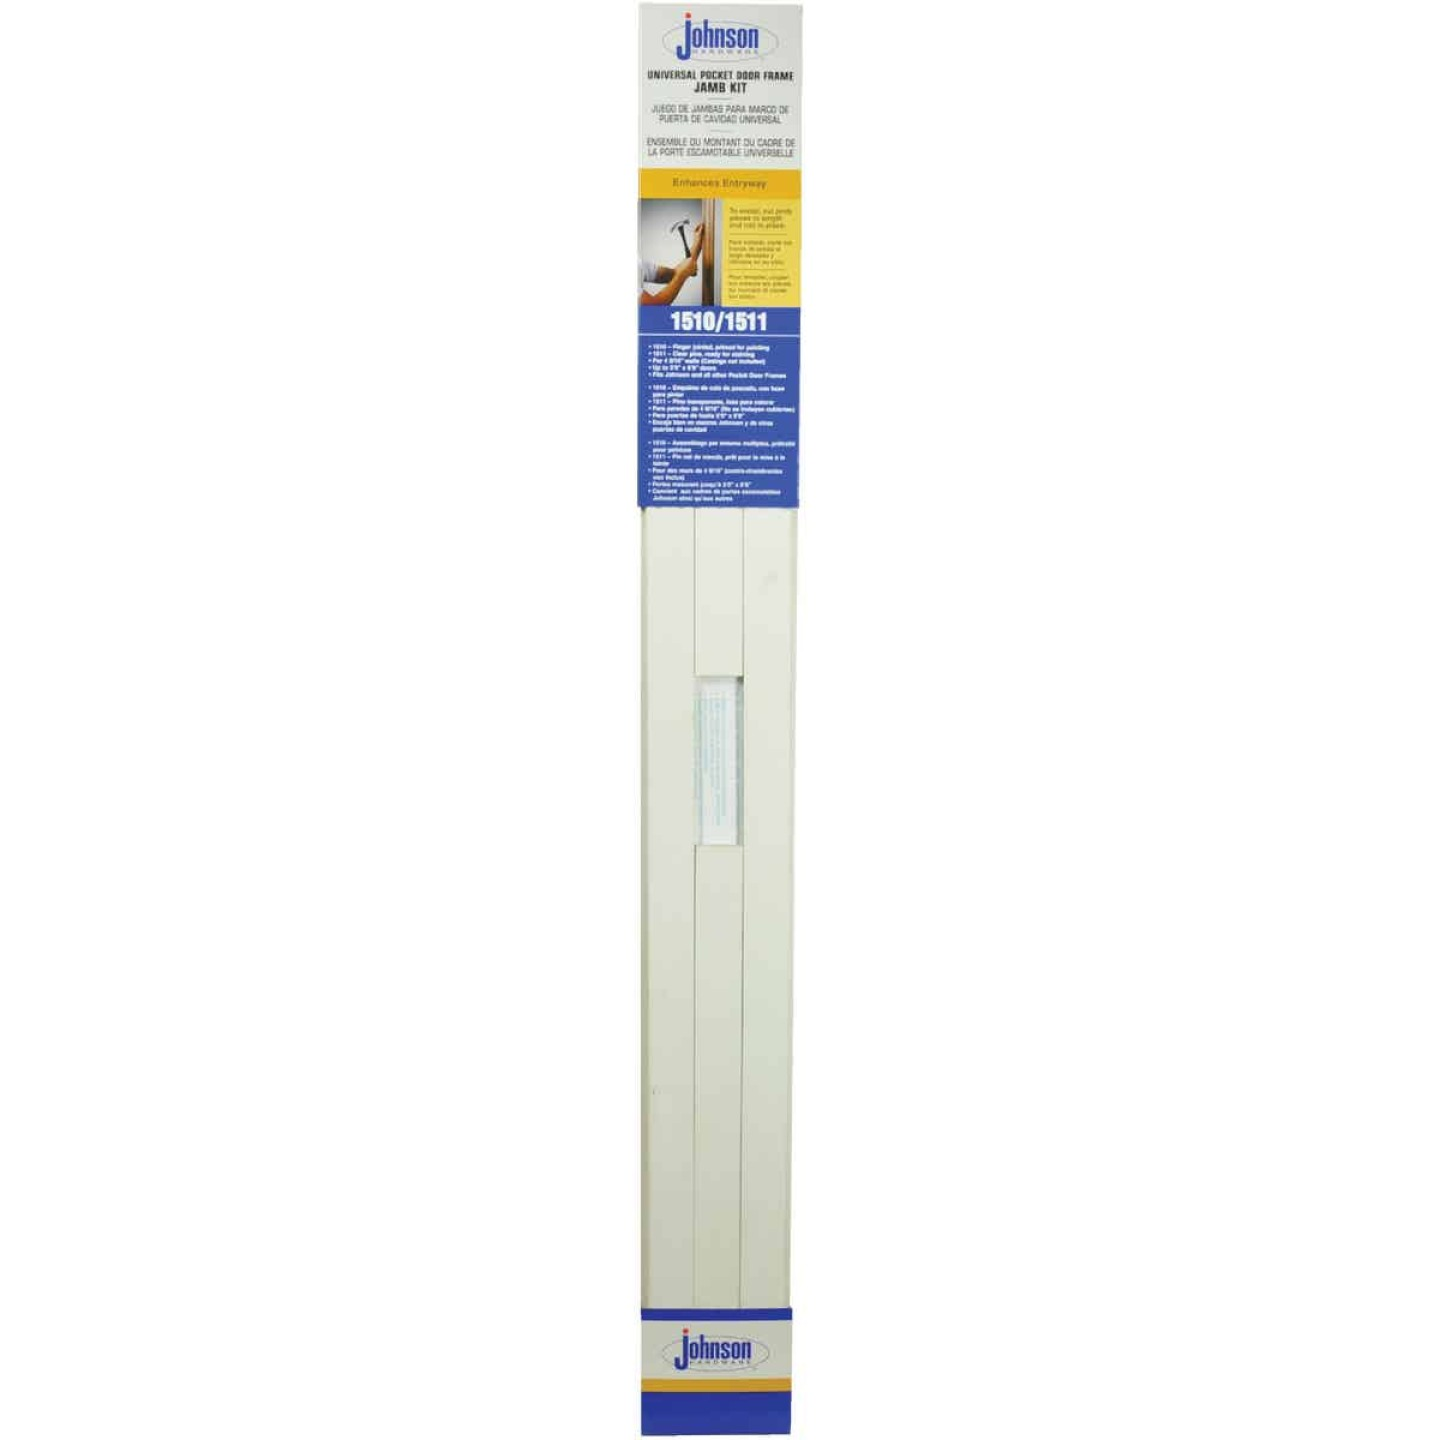 Johnson Hardware 1510 Series 36 In. To 80 In. White Pocket Door Frame Image 2